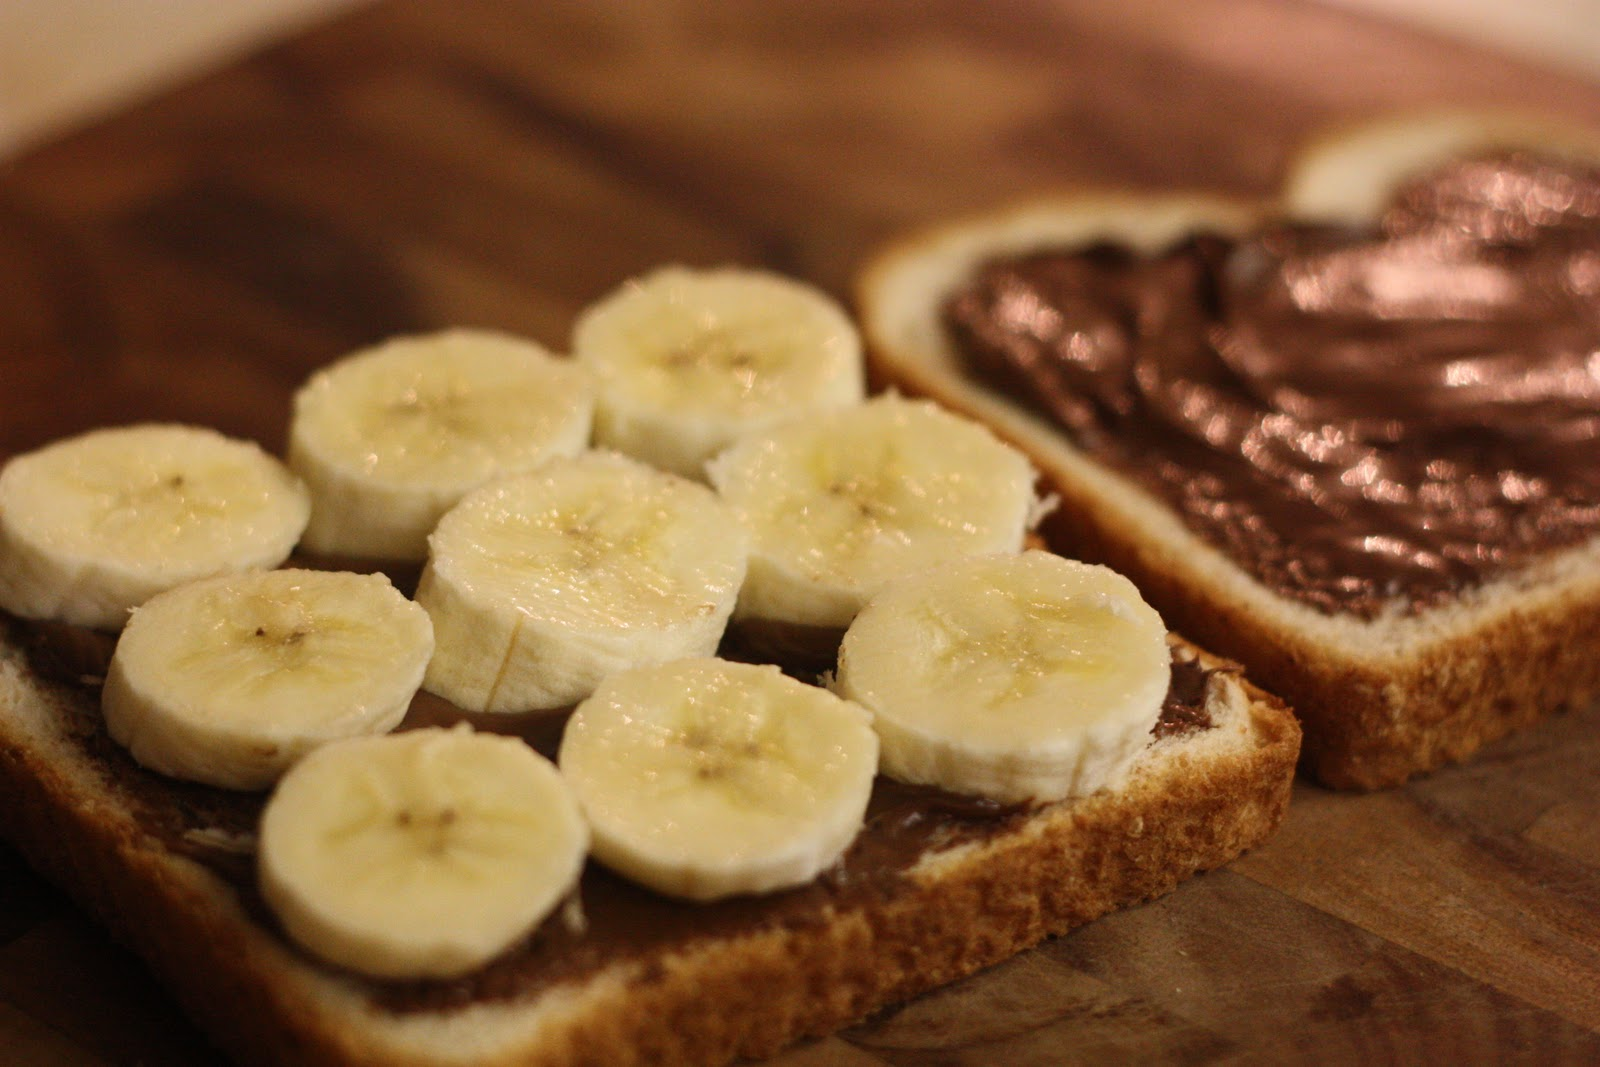 ... nutella banana marshmallow creme panino roasted banana nutella